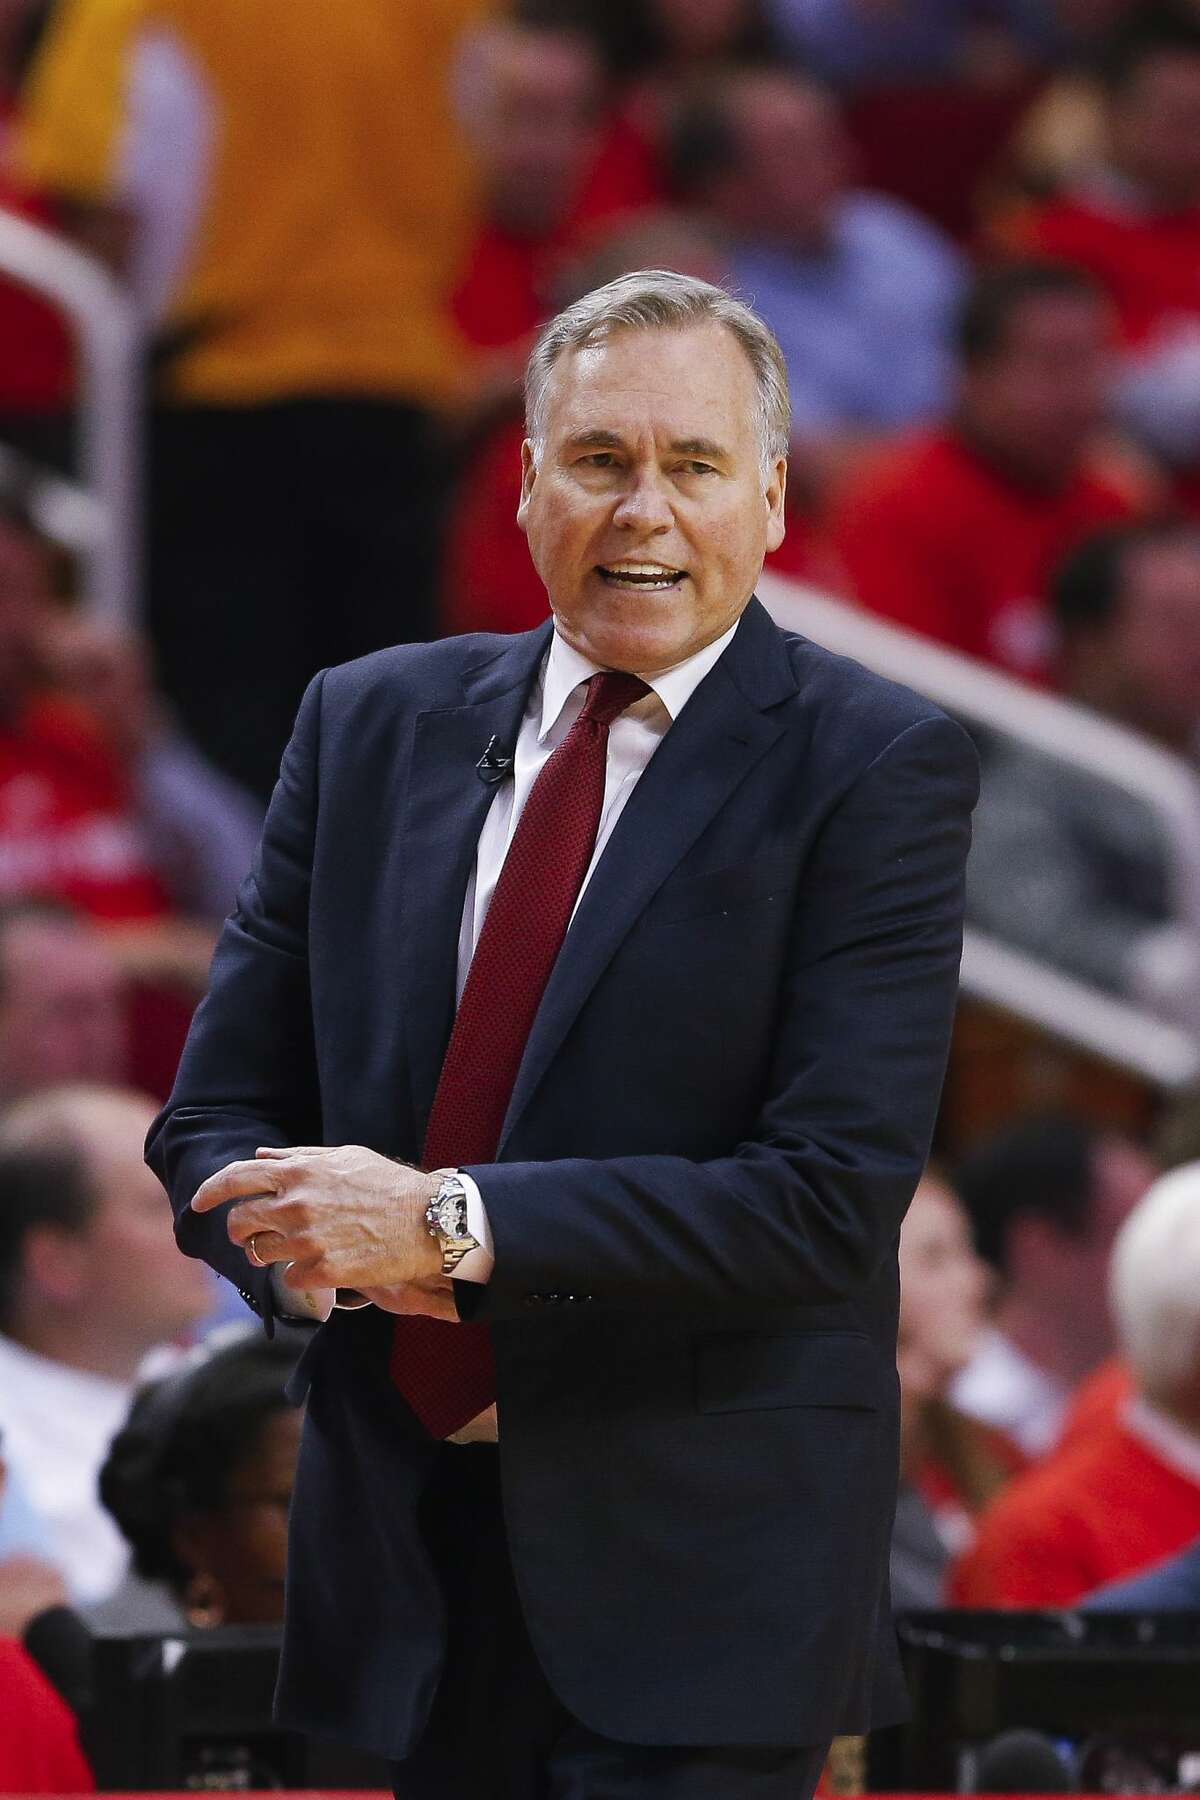 Houston Rockets head coach Mike D'Antoni yells about a foul call as the Houston Rockets take on the Oklahoma City Thunder in Game 2 of the first-round playoff series Wednesday, April 19, 2017 in Houston at the Toyota Center. ( Michael Ciaglo / Houston Chronicle)